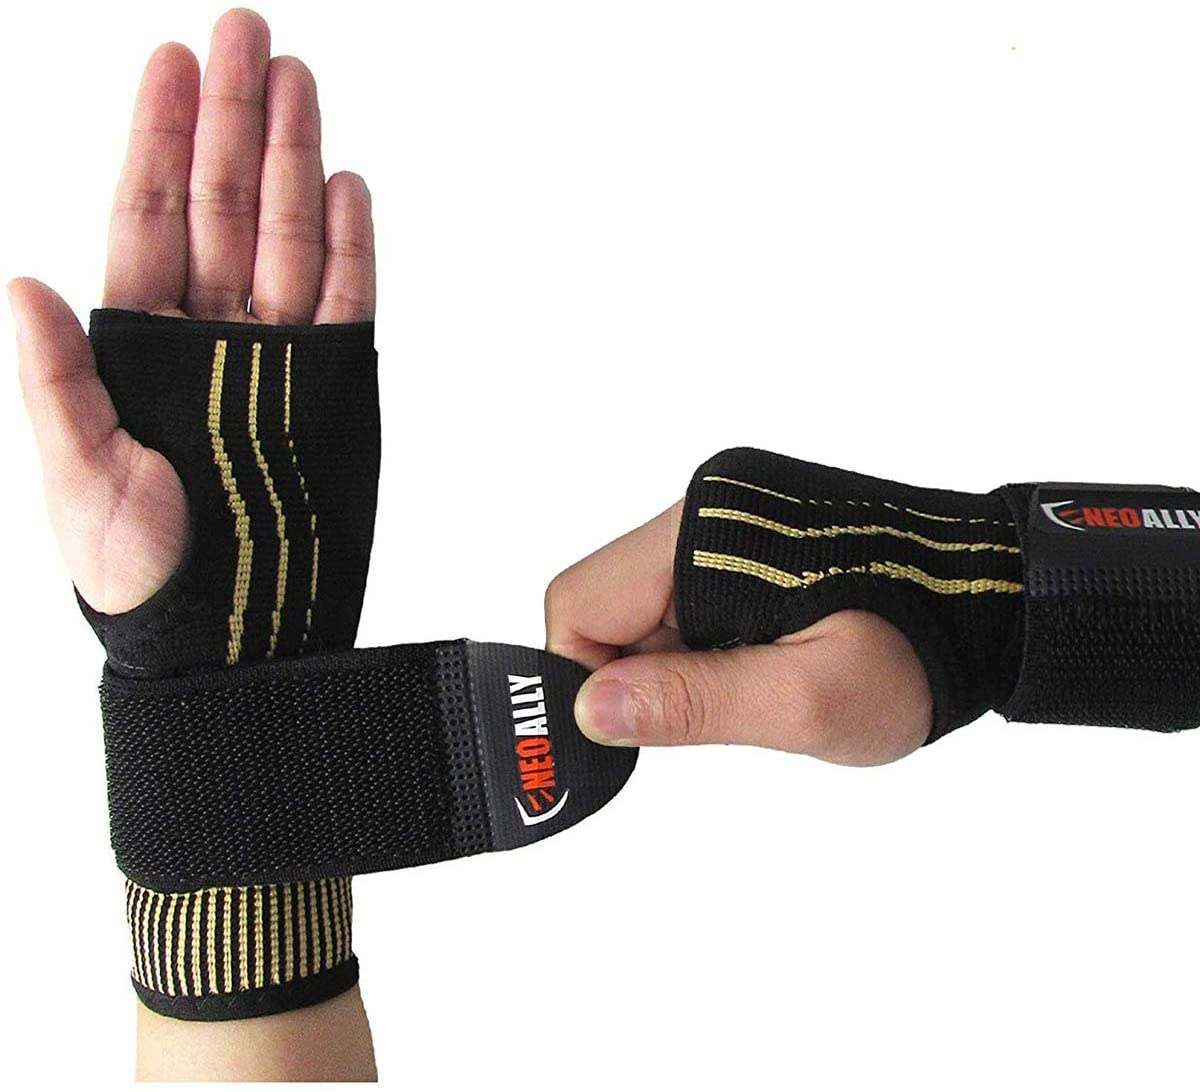 NeoAlly® Copper Wrist Support with Adjustable Strap for Custom Fit | NeoAllySports.com